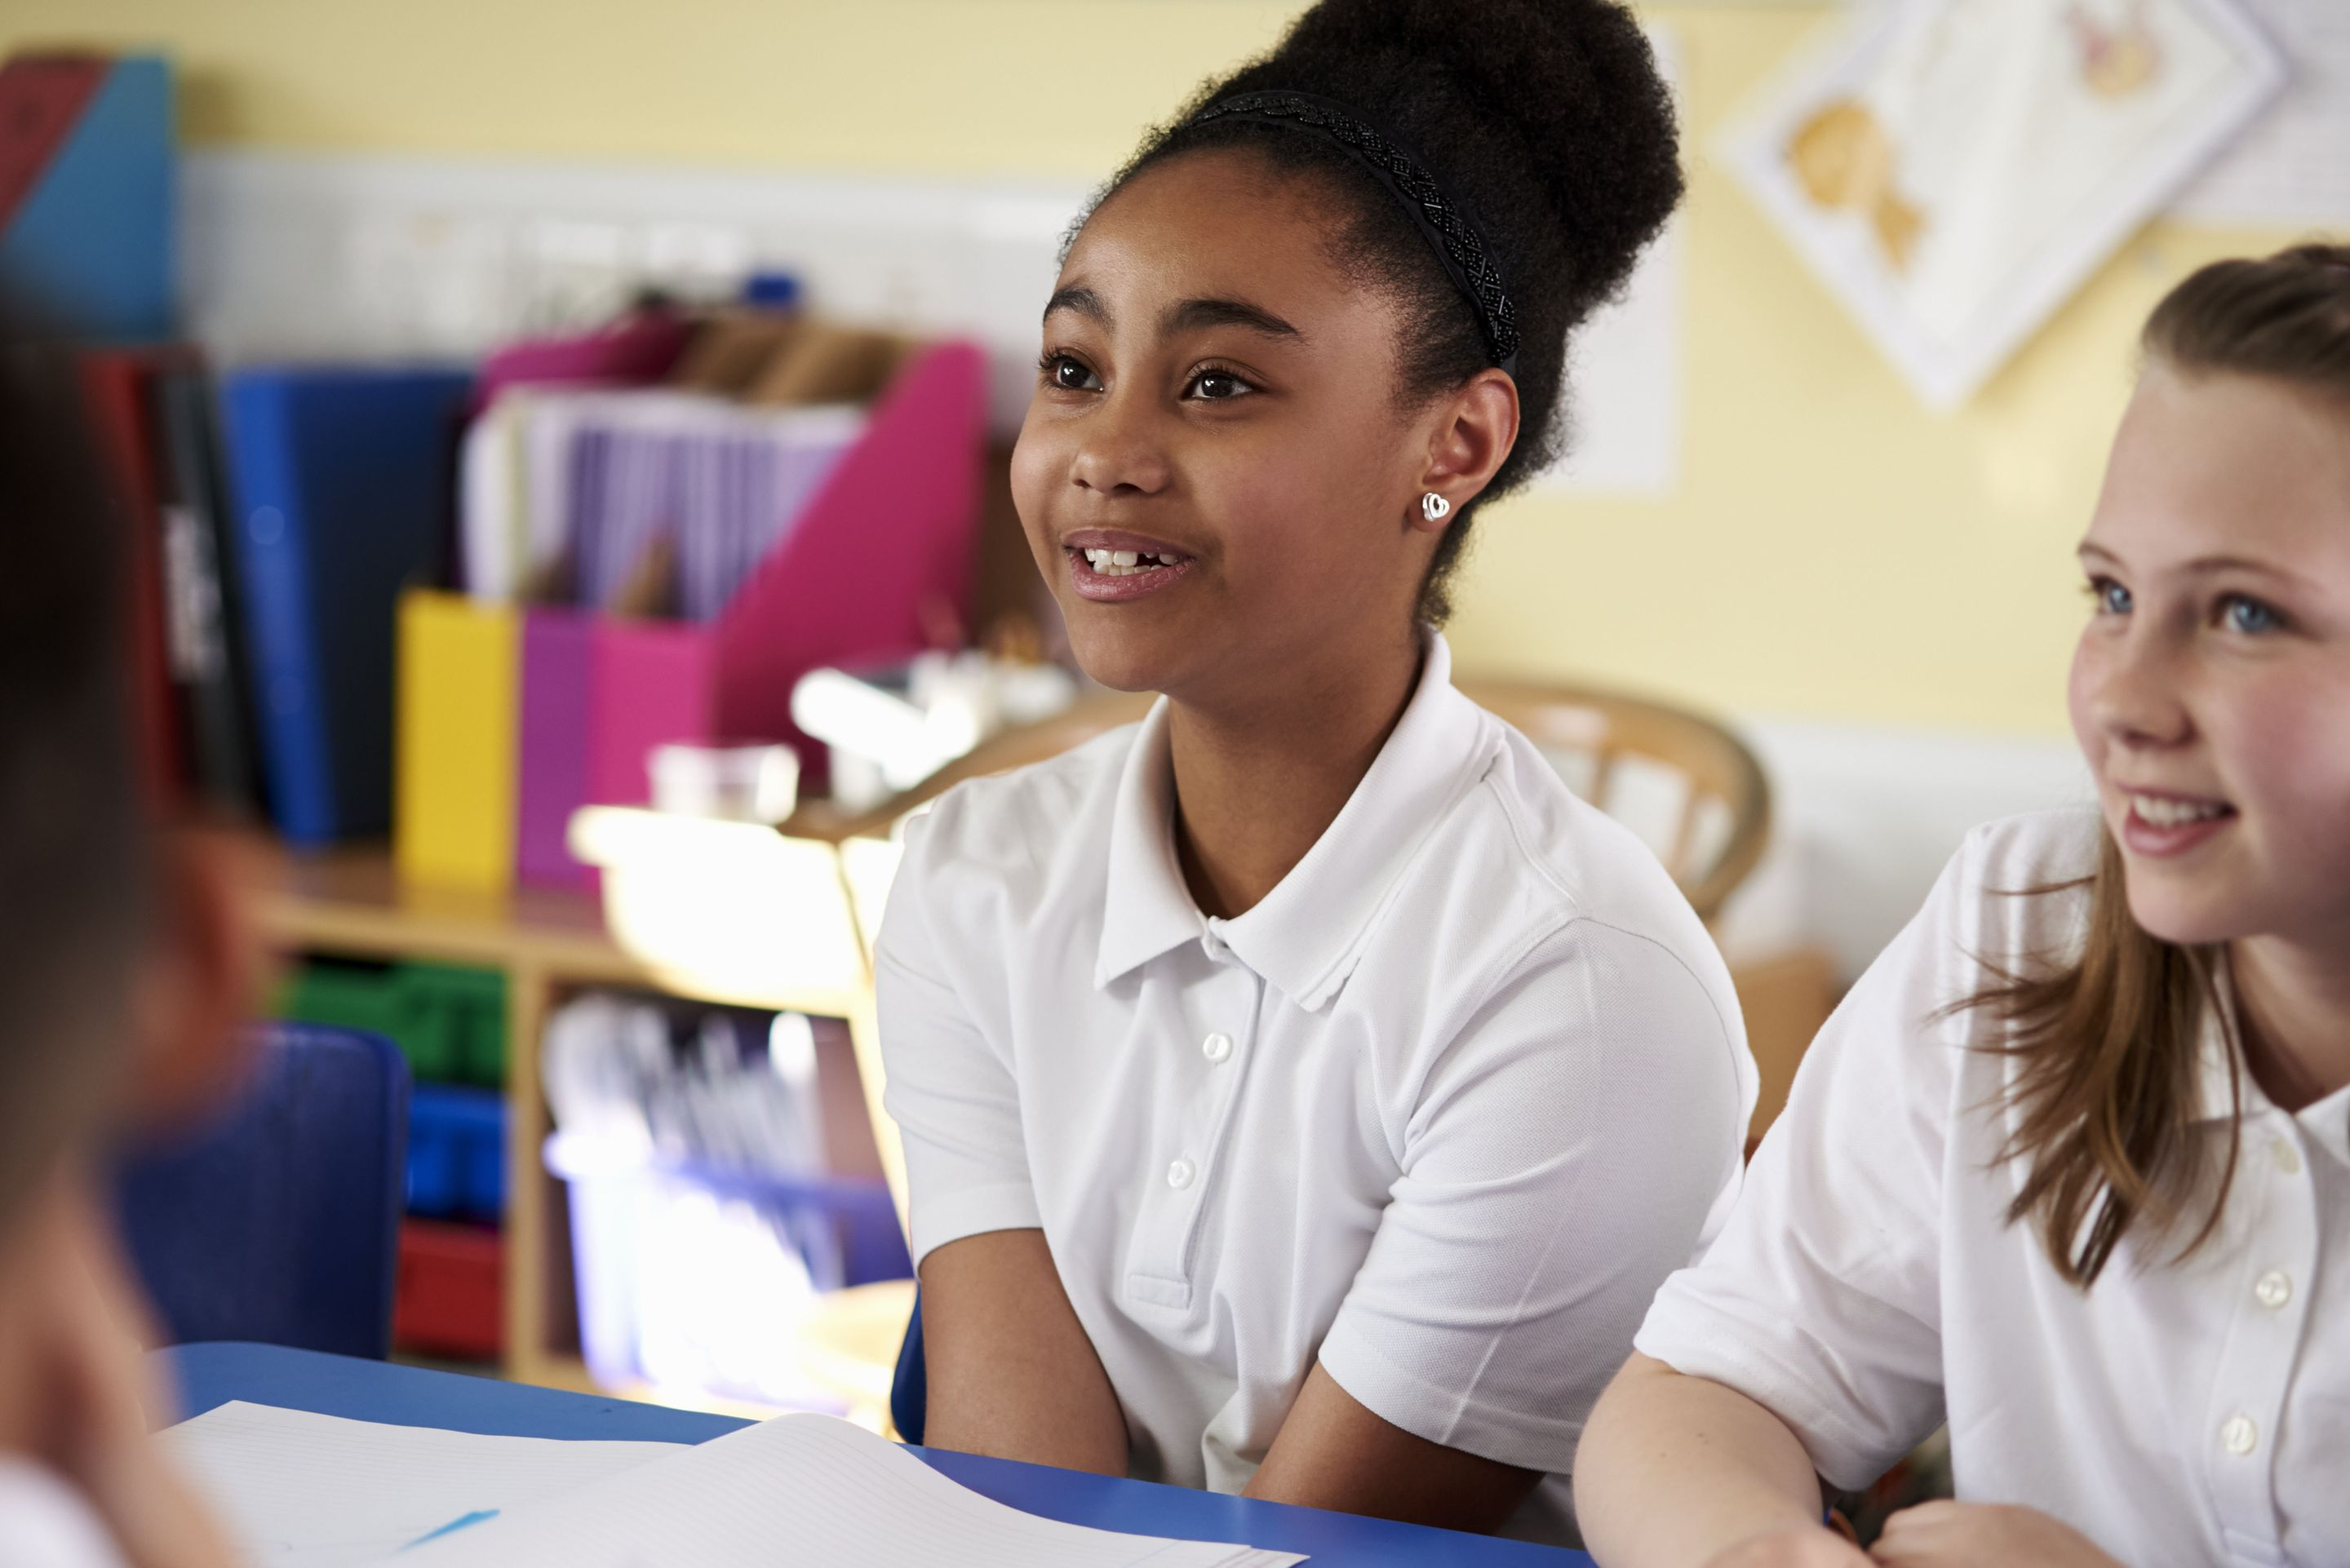 Young girl preparing to speak in class